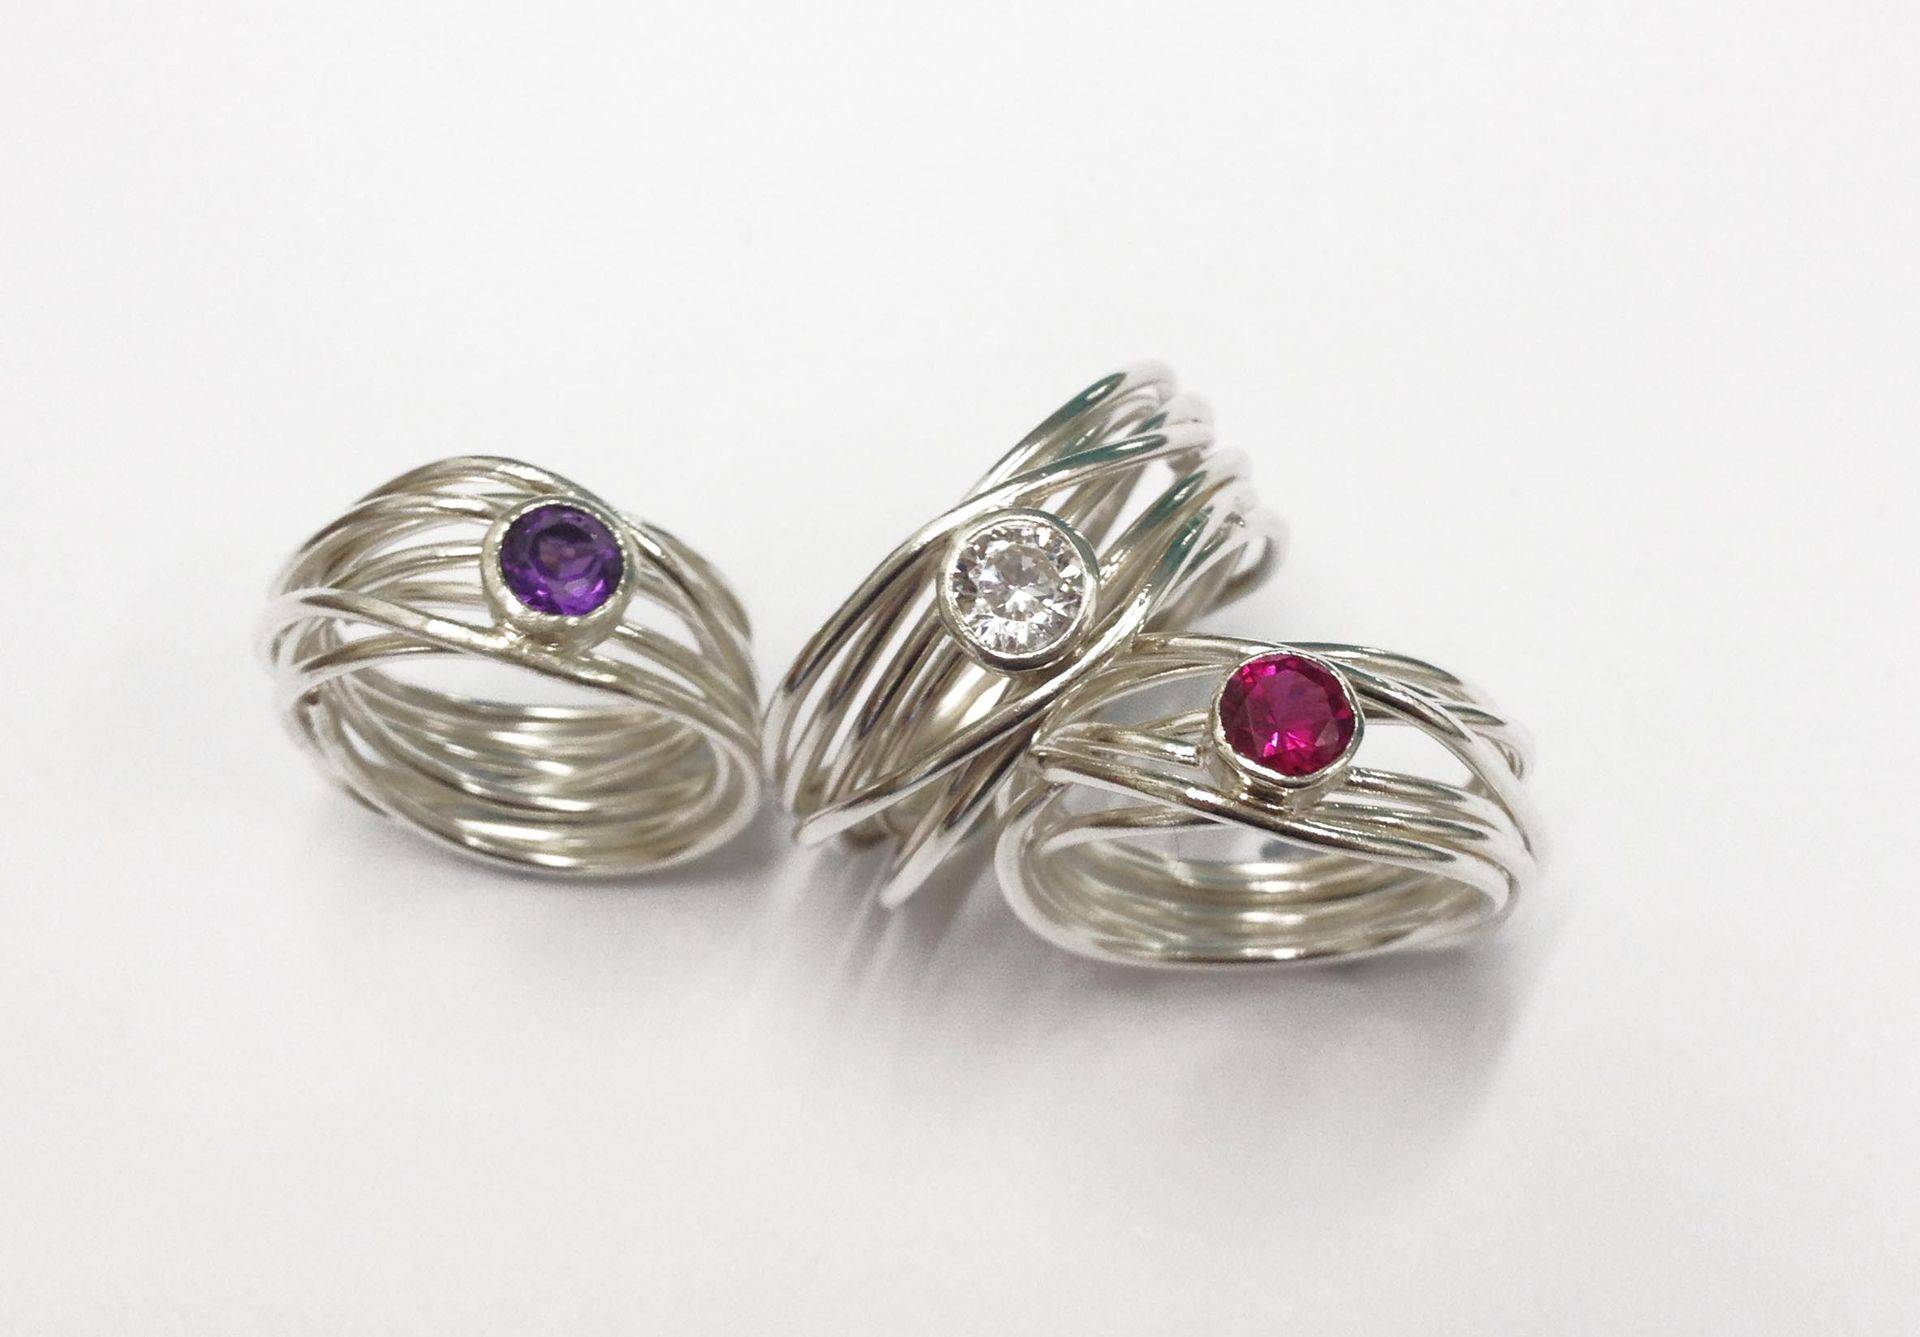 Silver rings with semi-precious stones